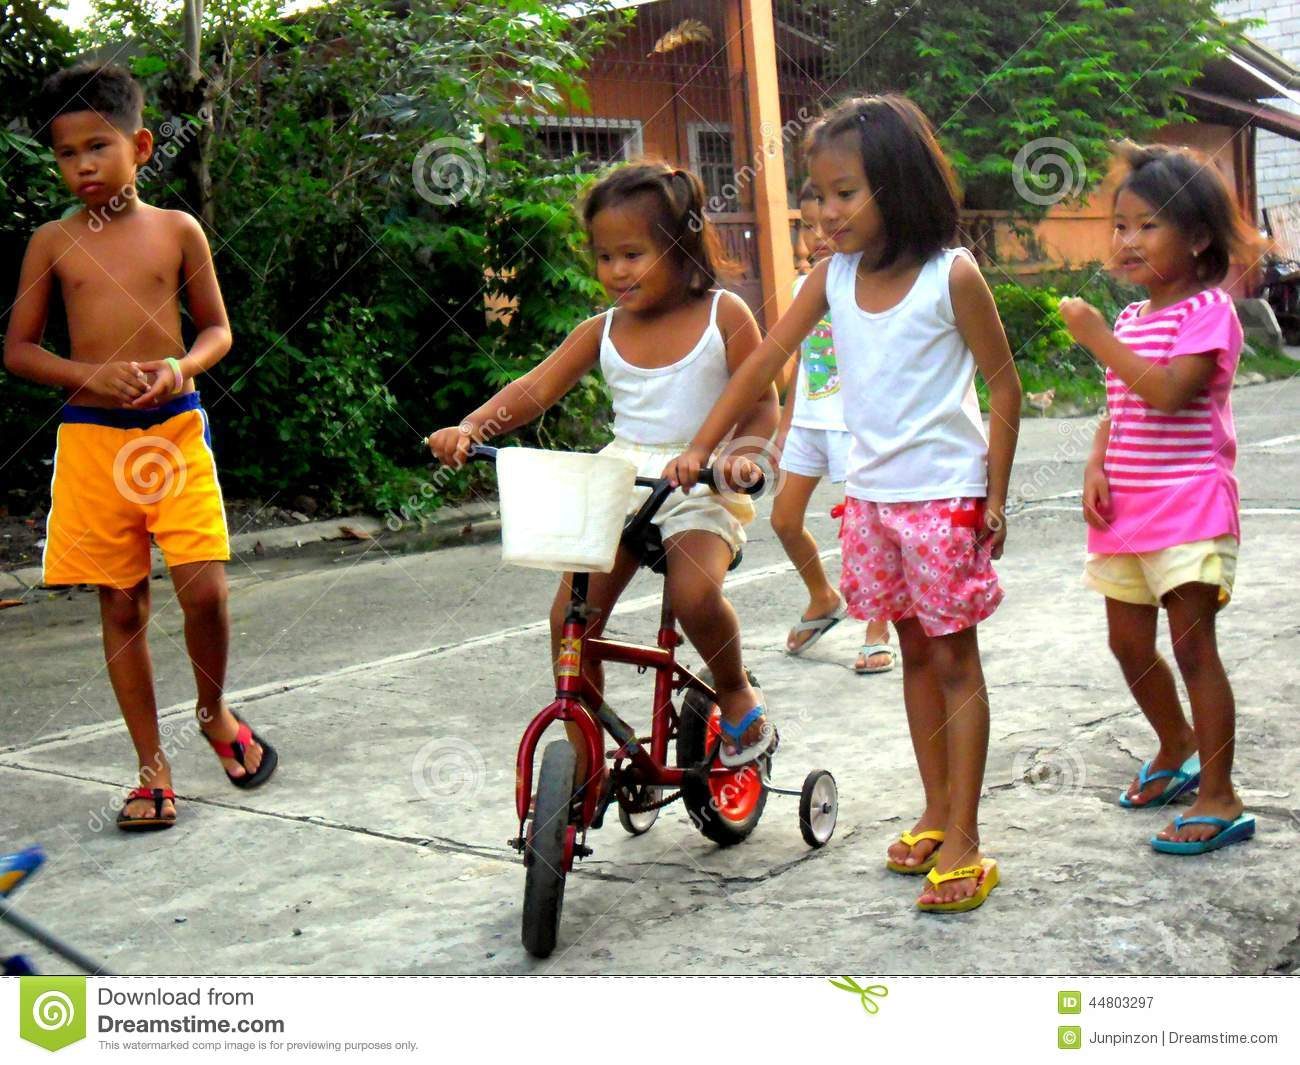 Photo of young asian boys and girls playing in the streets and riding a  bicycle